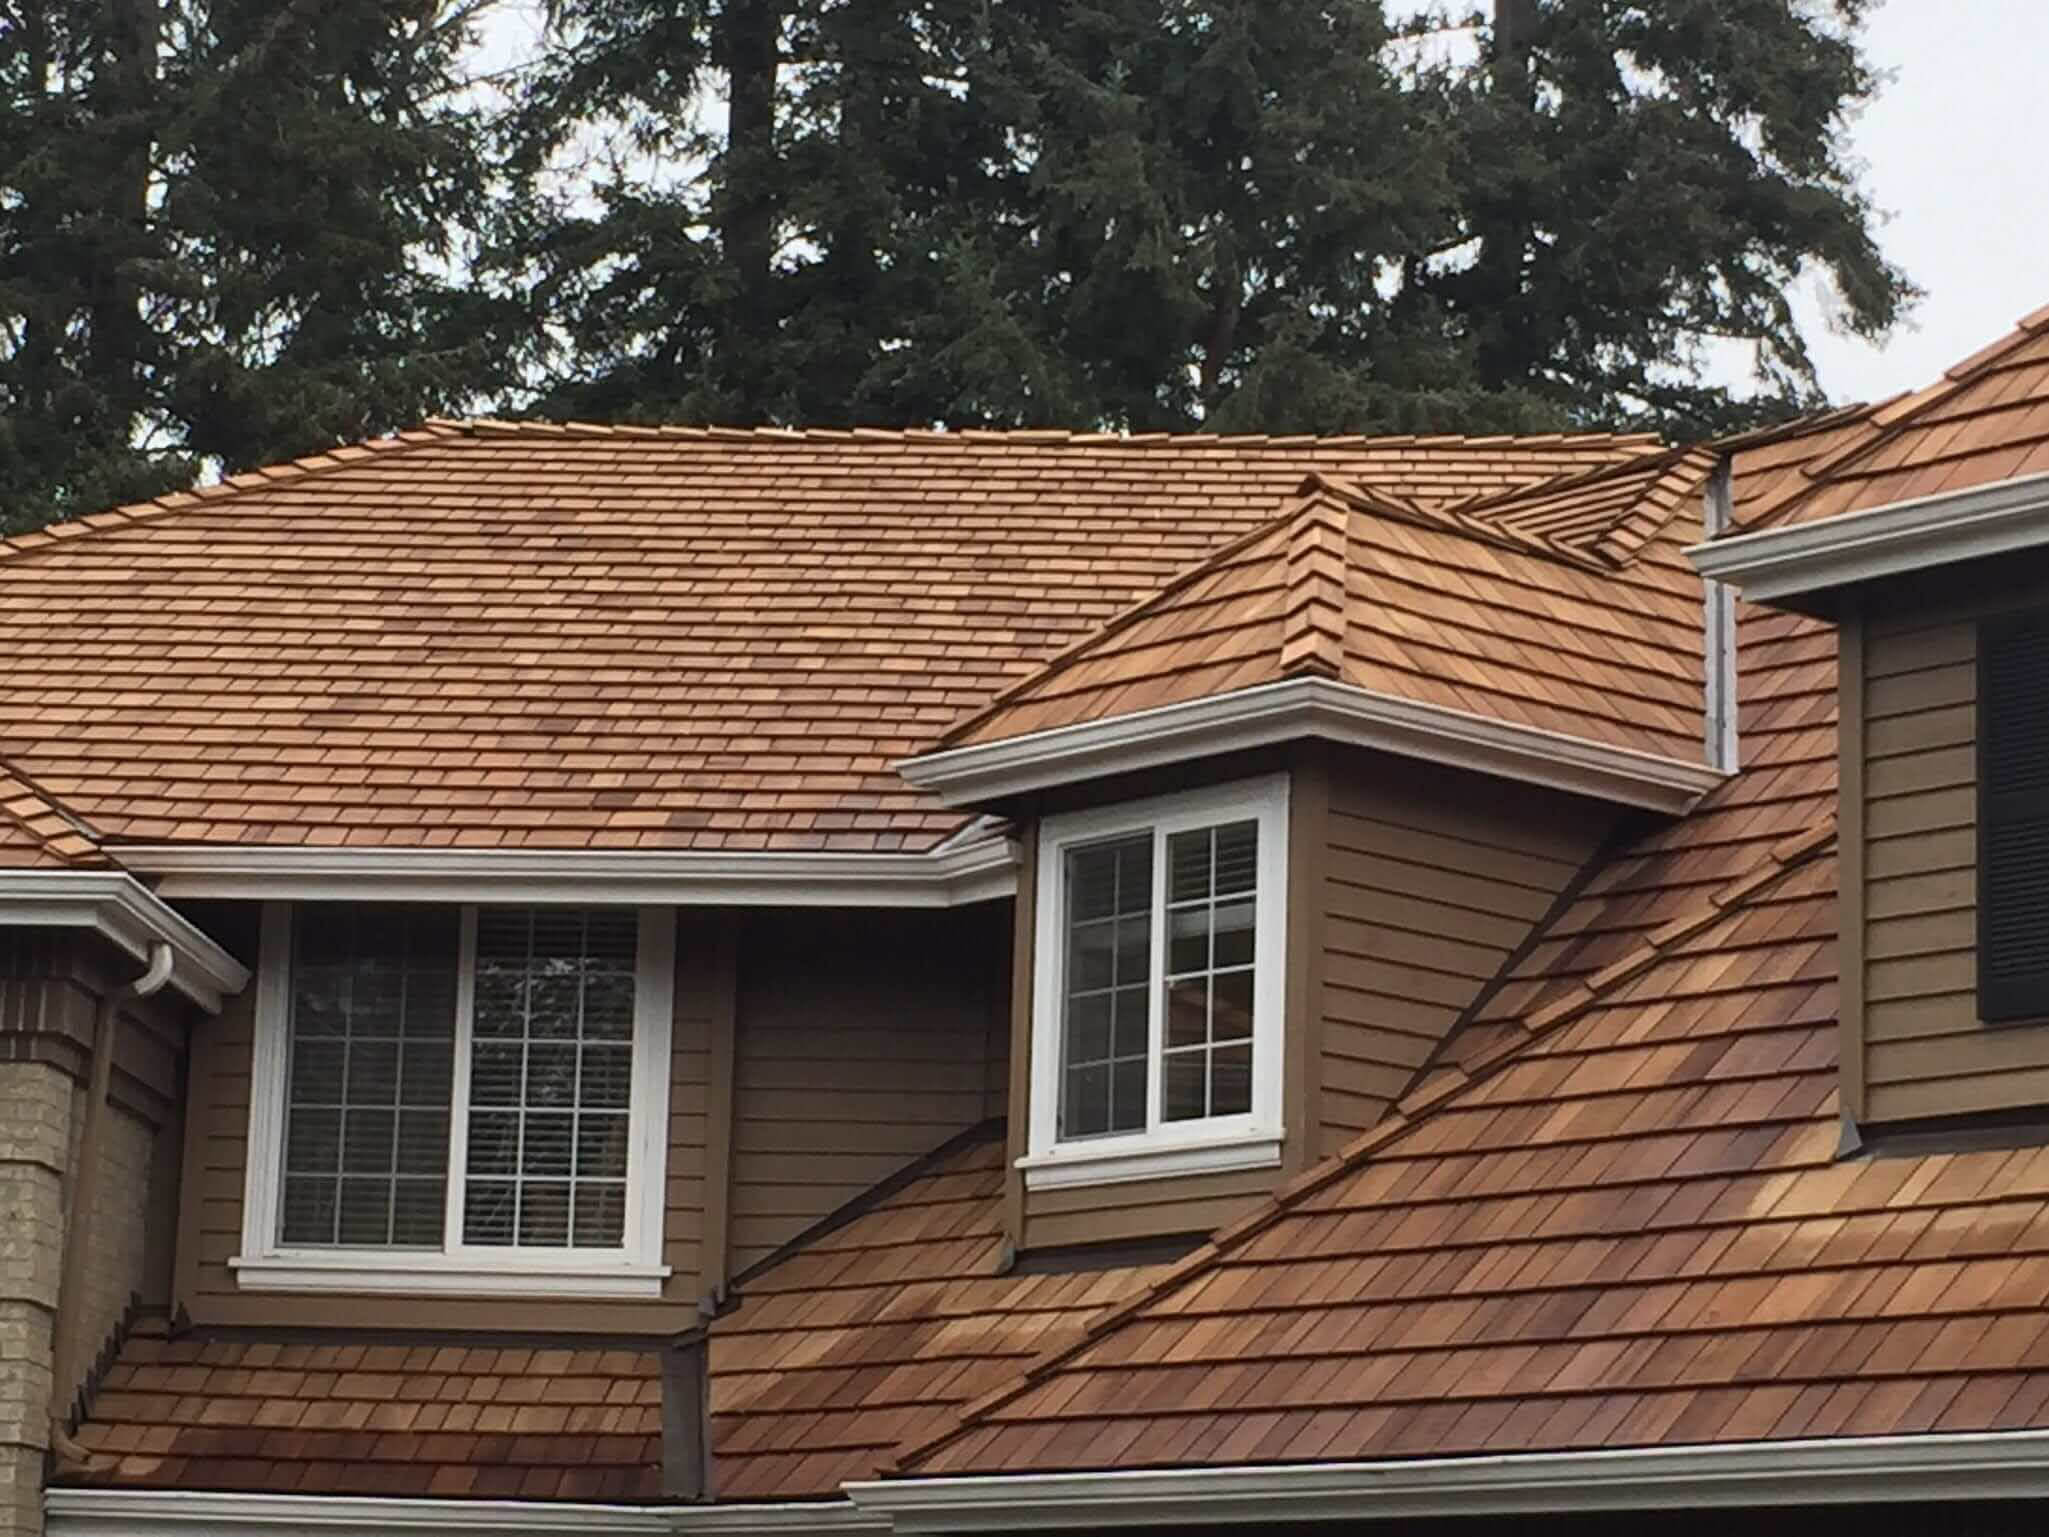 Sherpa Roofing & Construction - Cedar Shake Roof - new roof - Woodinville roofers - roofing company